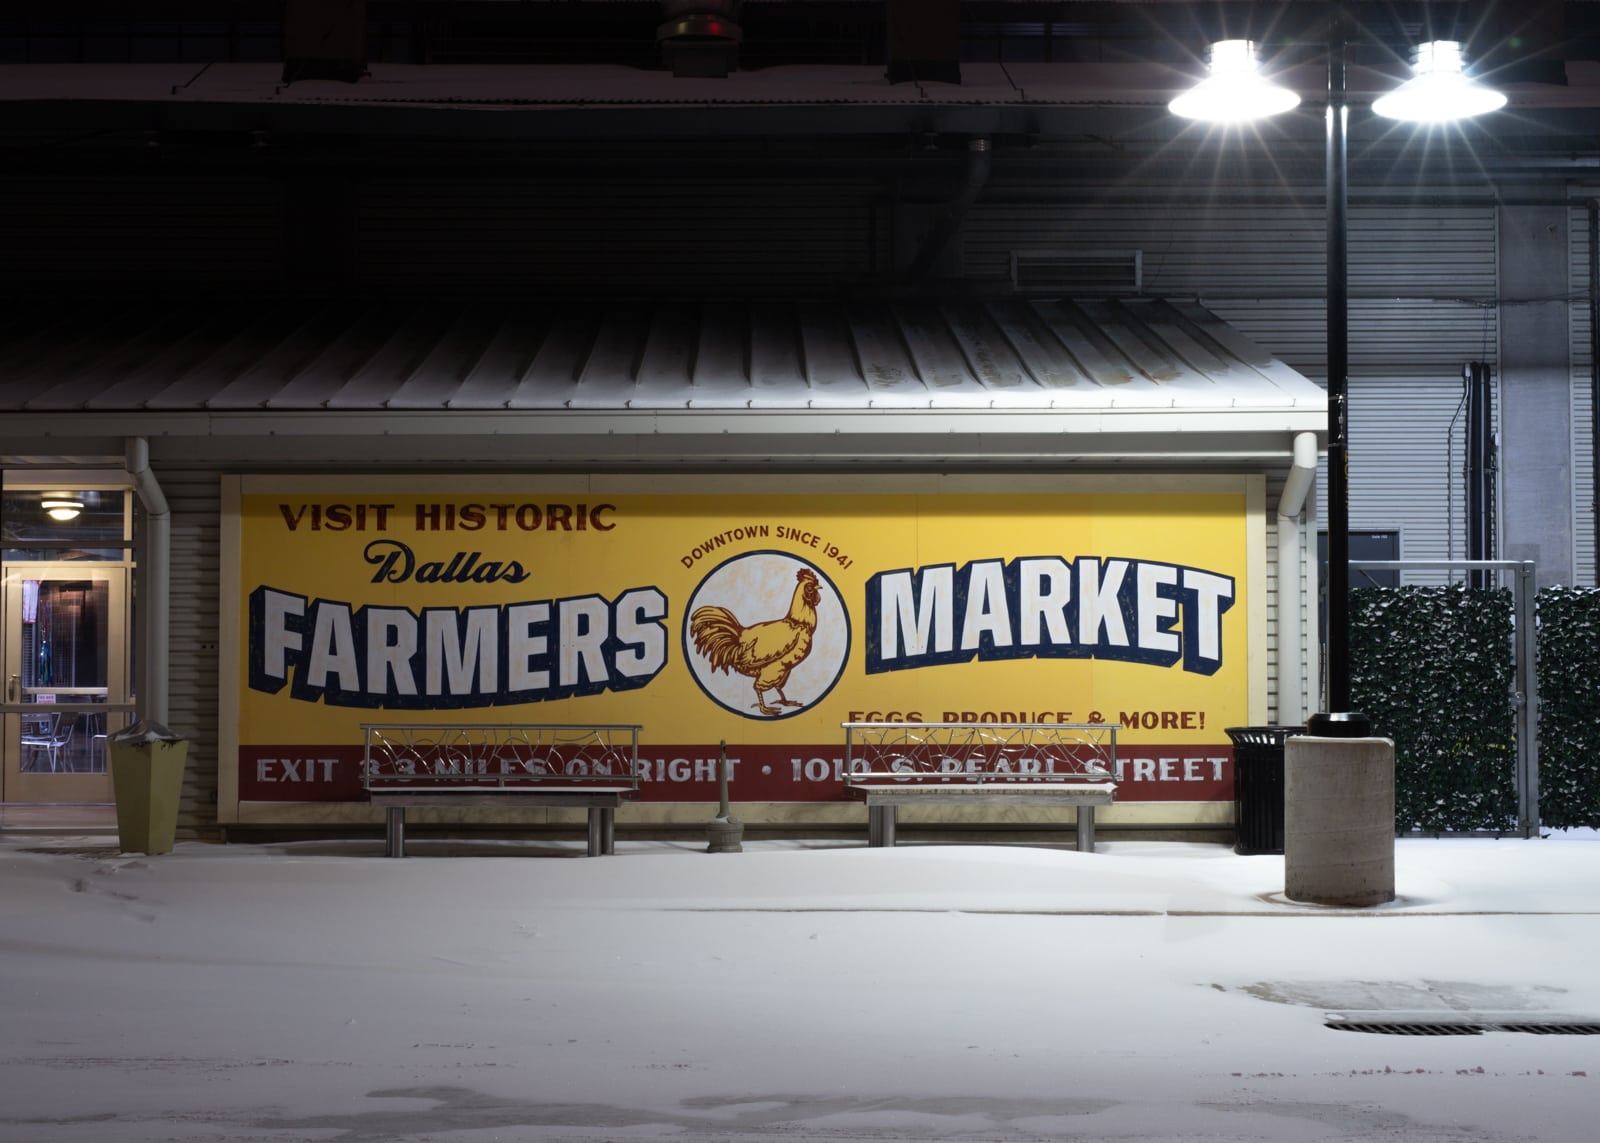 Dallas farmers market sign at night